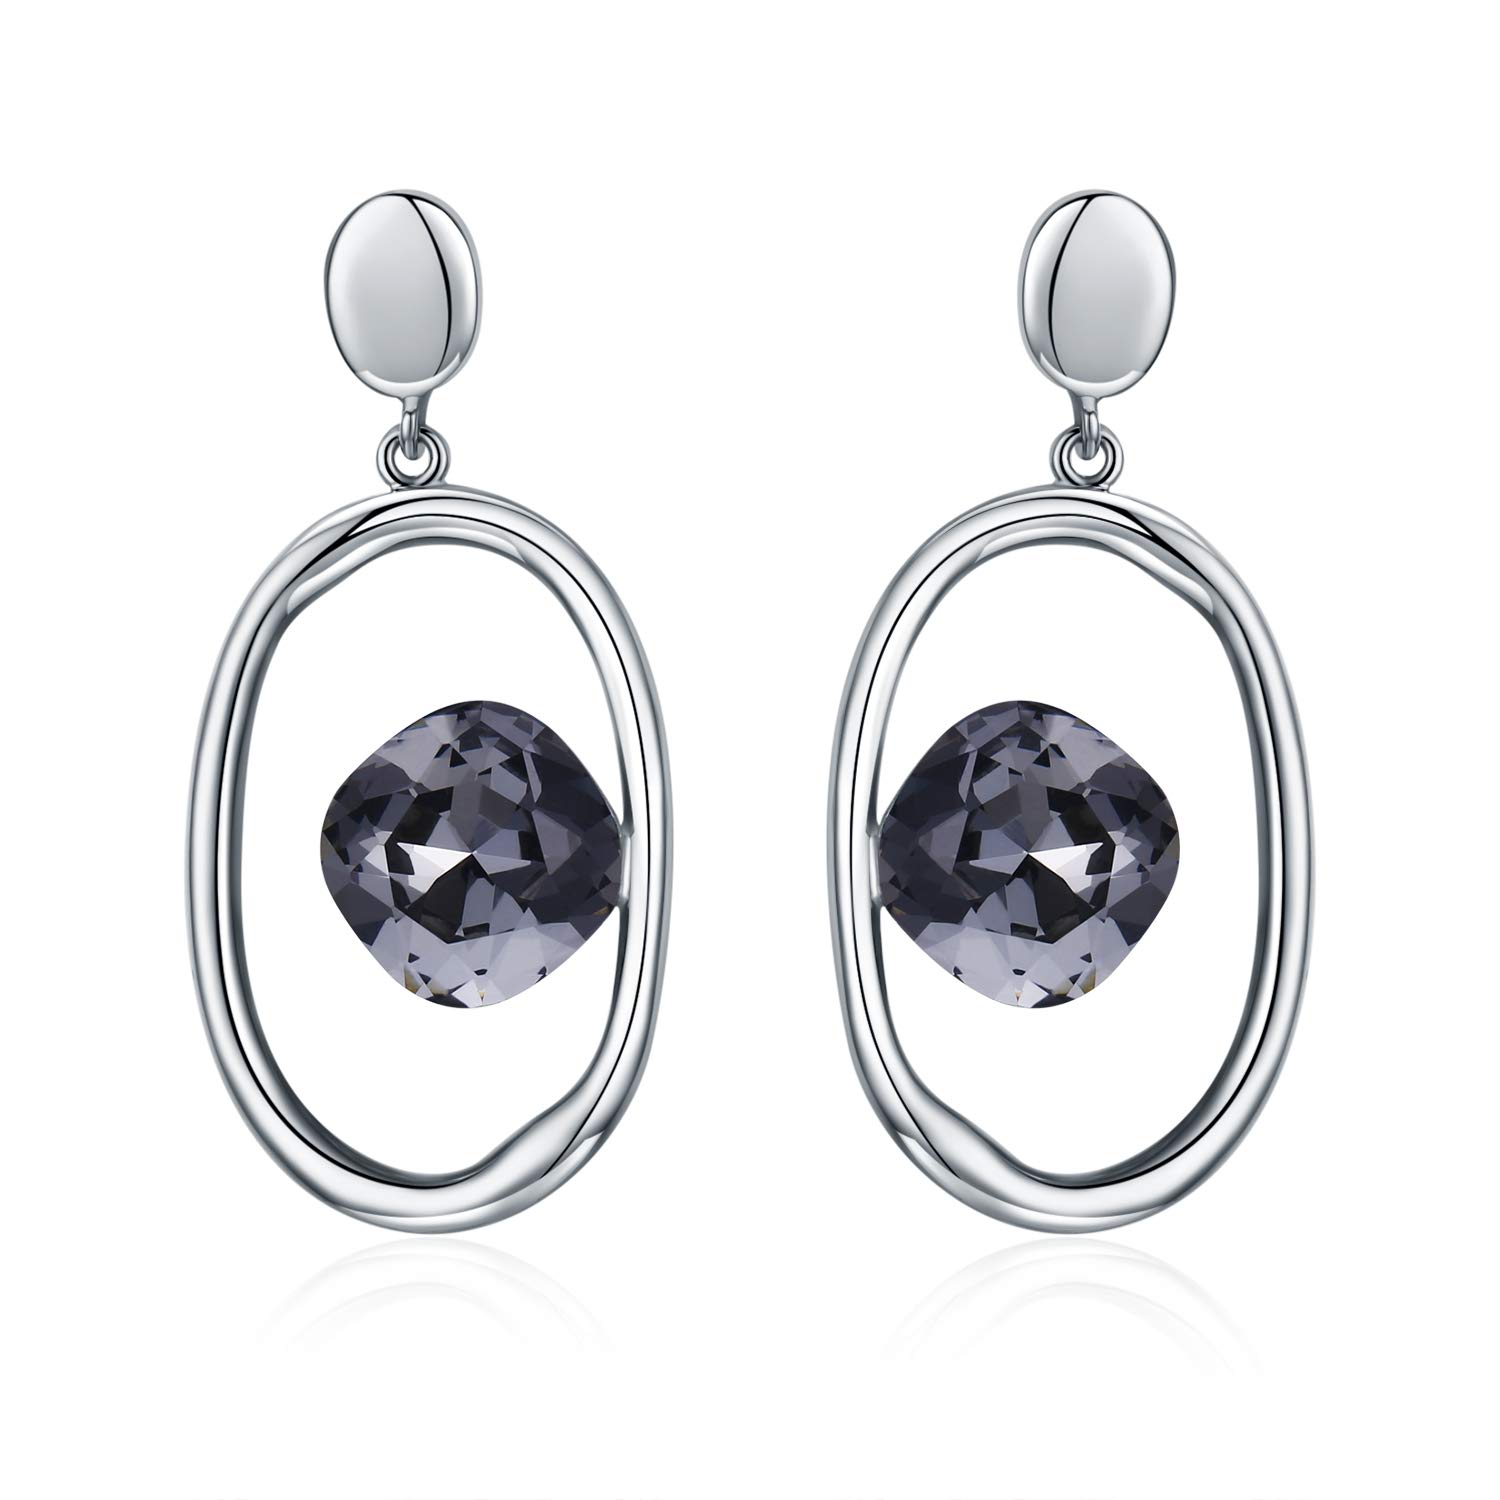 SBLING 18K Champagne Gold Plated or Platinum Plated Drop Earrings Made with Swarovski Crystals 4 cttw